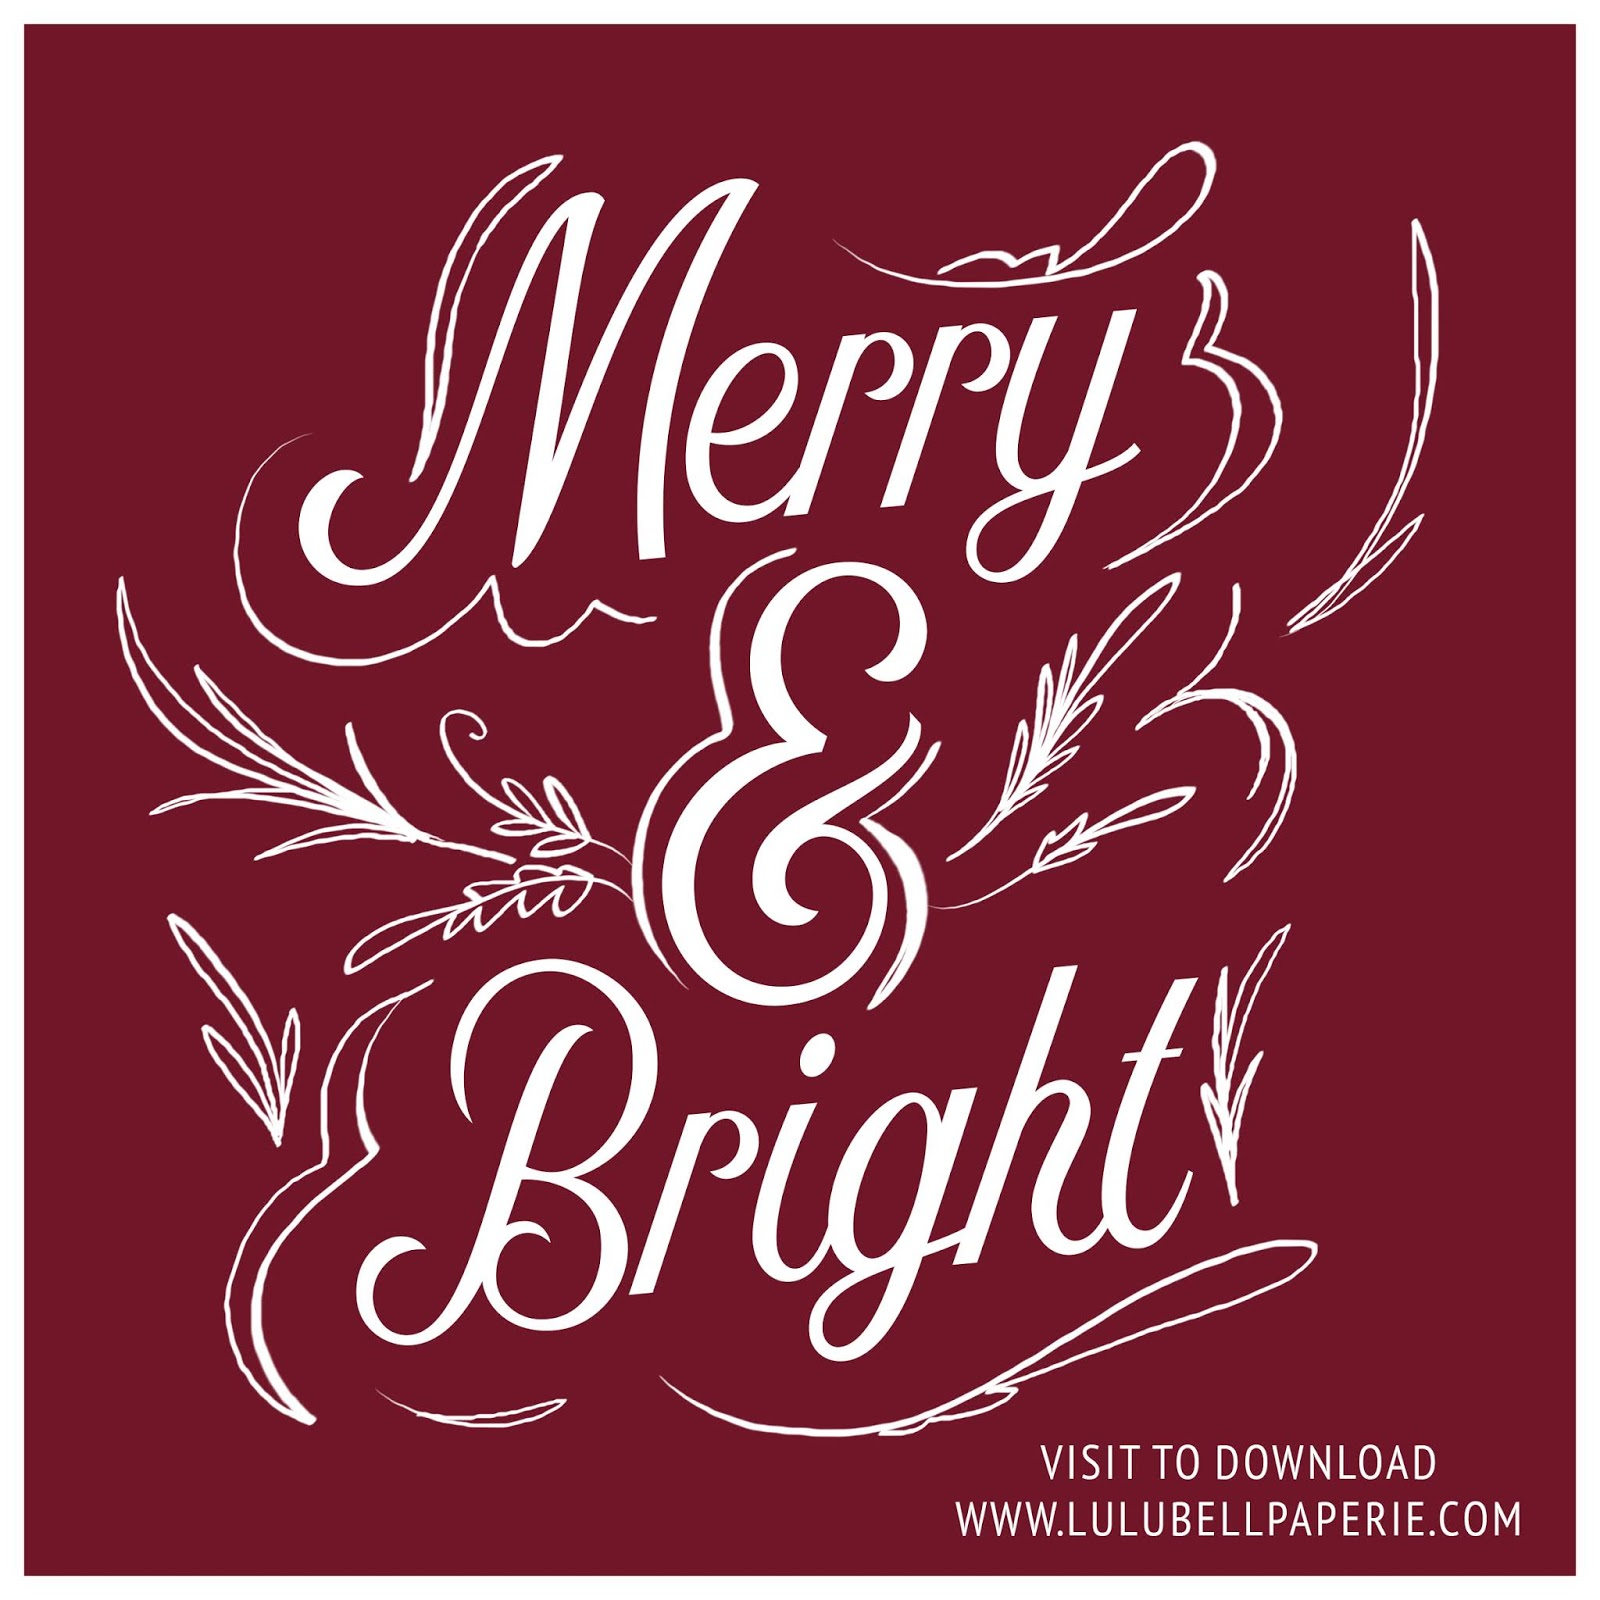 Free digital download Merry and Bright hand drawn typography art print. 8x8 inch size, is perfect to print from home for your holiday and Christmas decor.